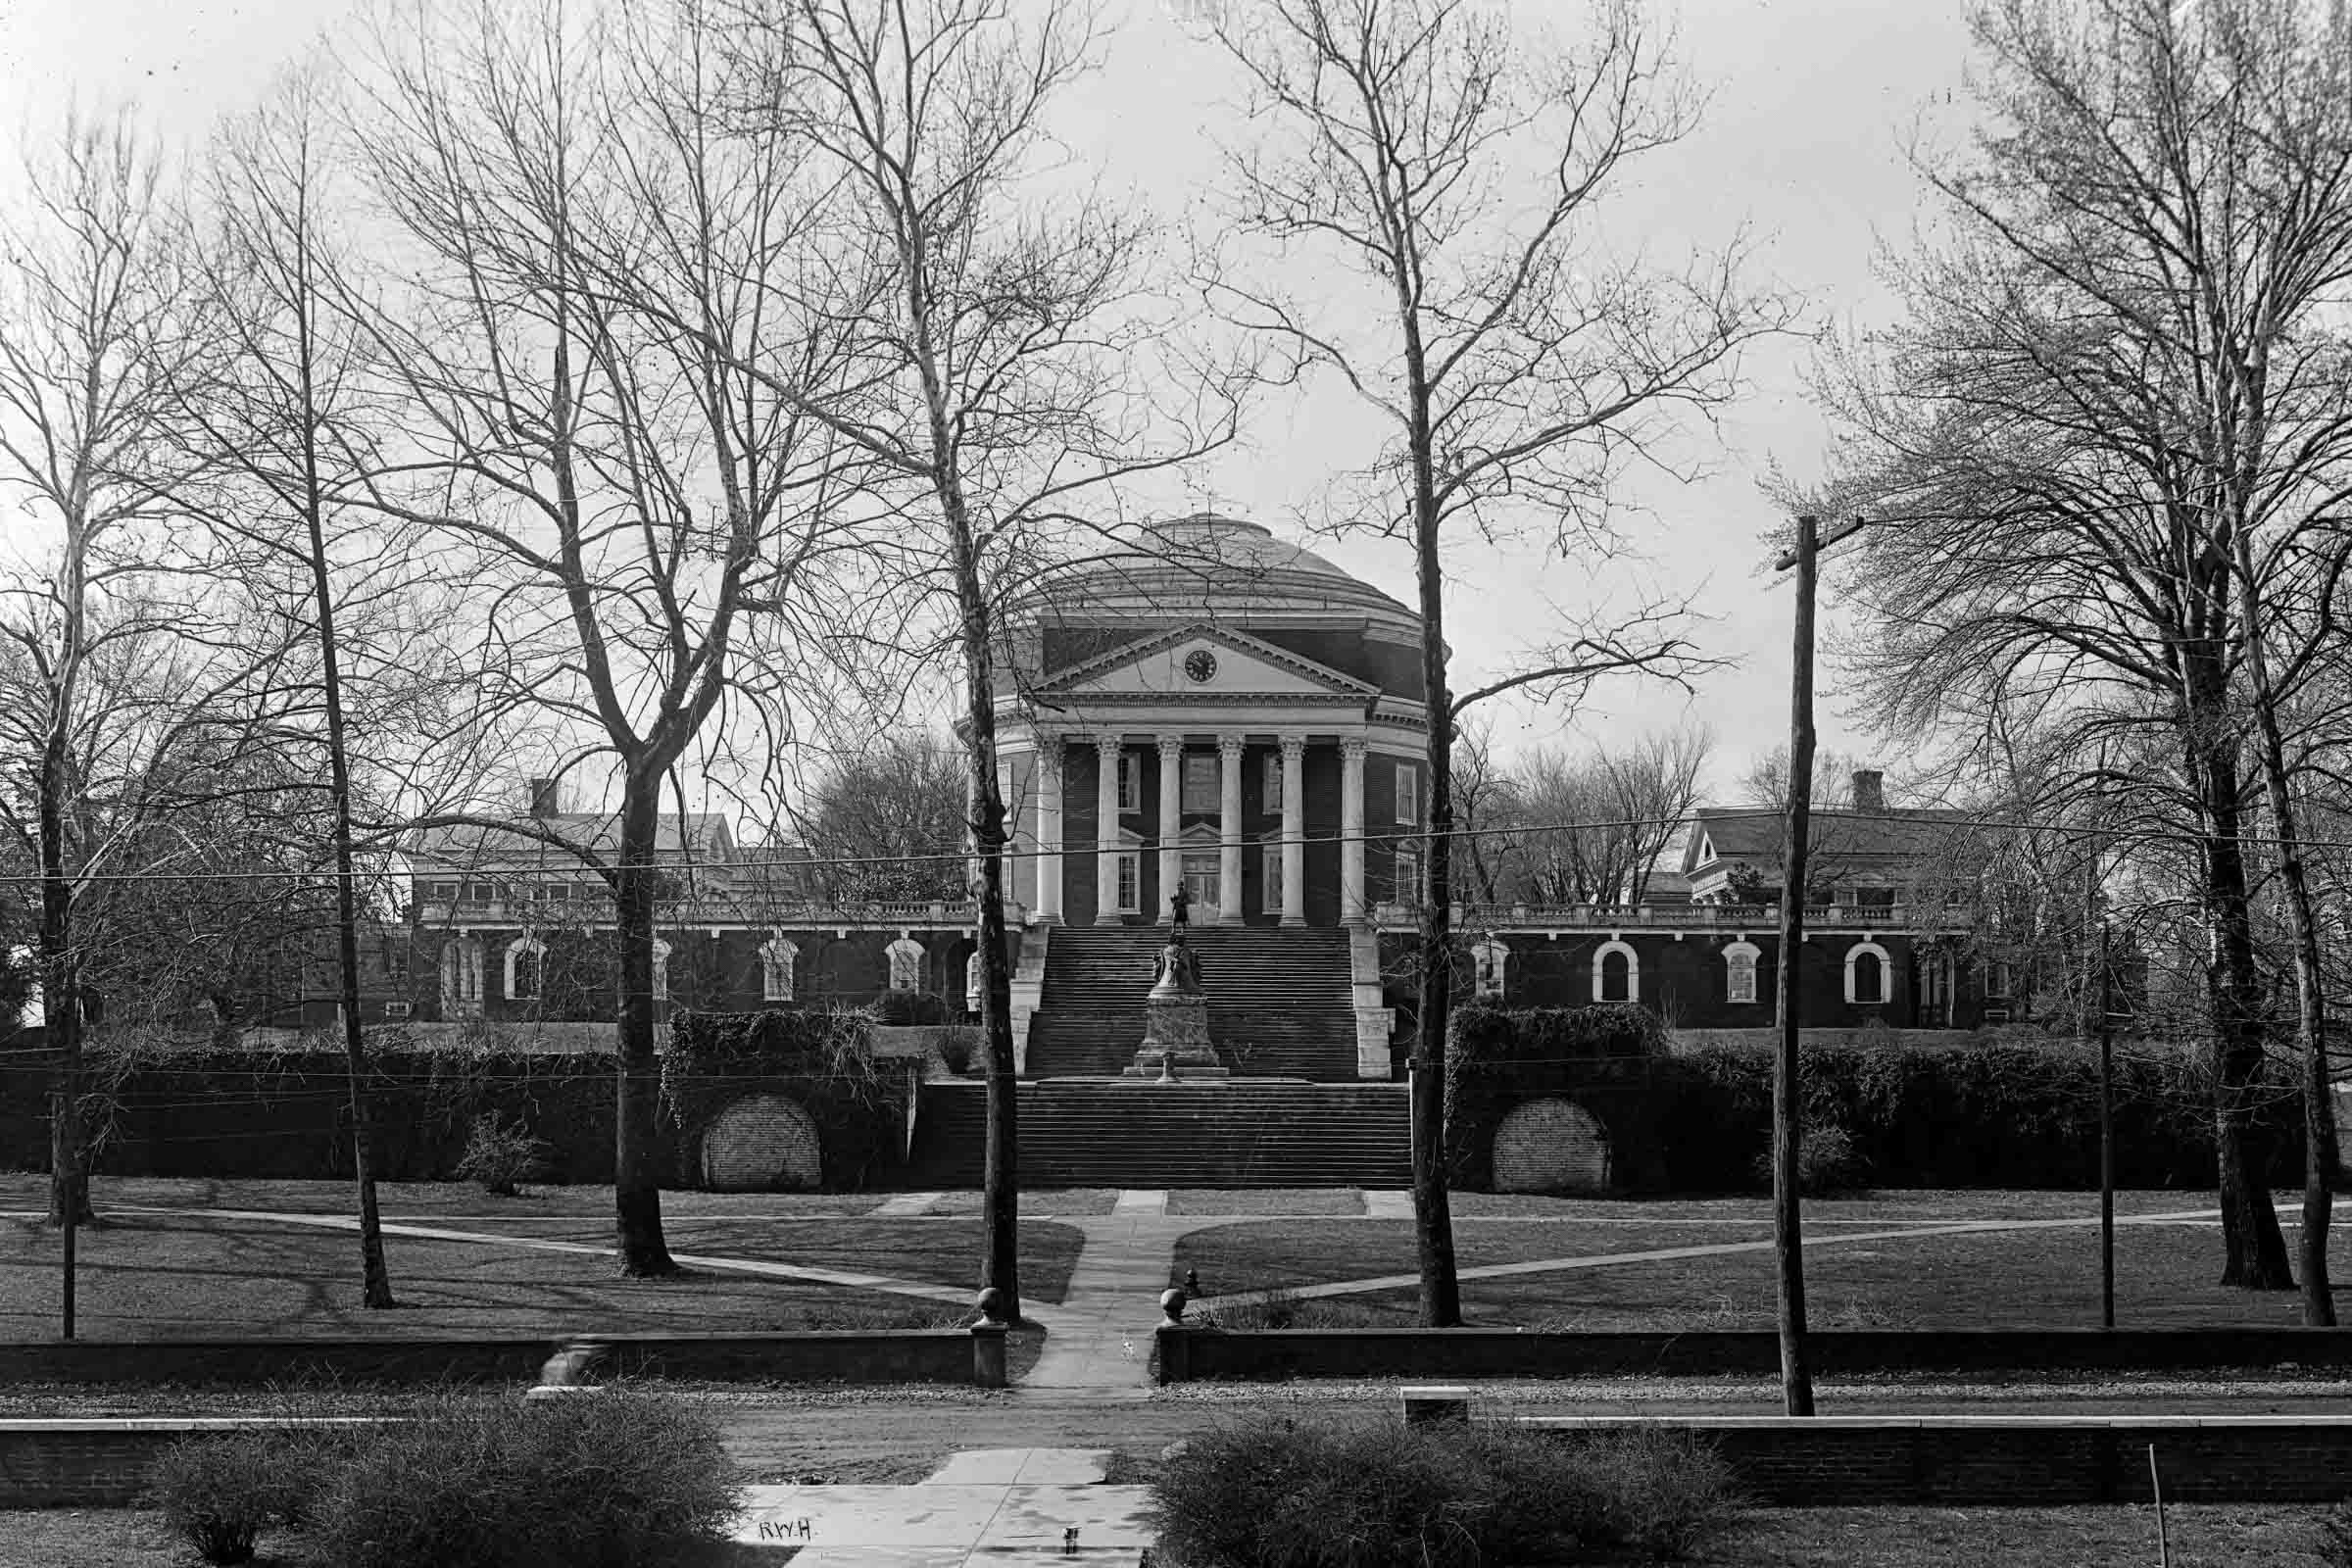 The Rotunda in 1913, as seen from the north, a view O'Keeffe captured several times. Image: Rufus W. Holsinger (American 1866-1930). Rotunda, 1913. Dry-plate glass negative. Holsinger Studio Collection, Albert and Shirley Small Special Collections Librar